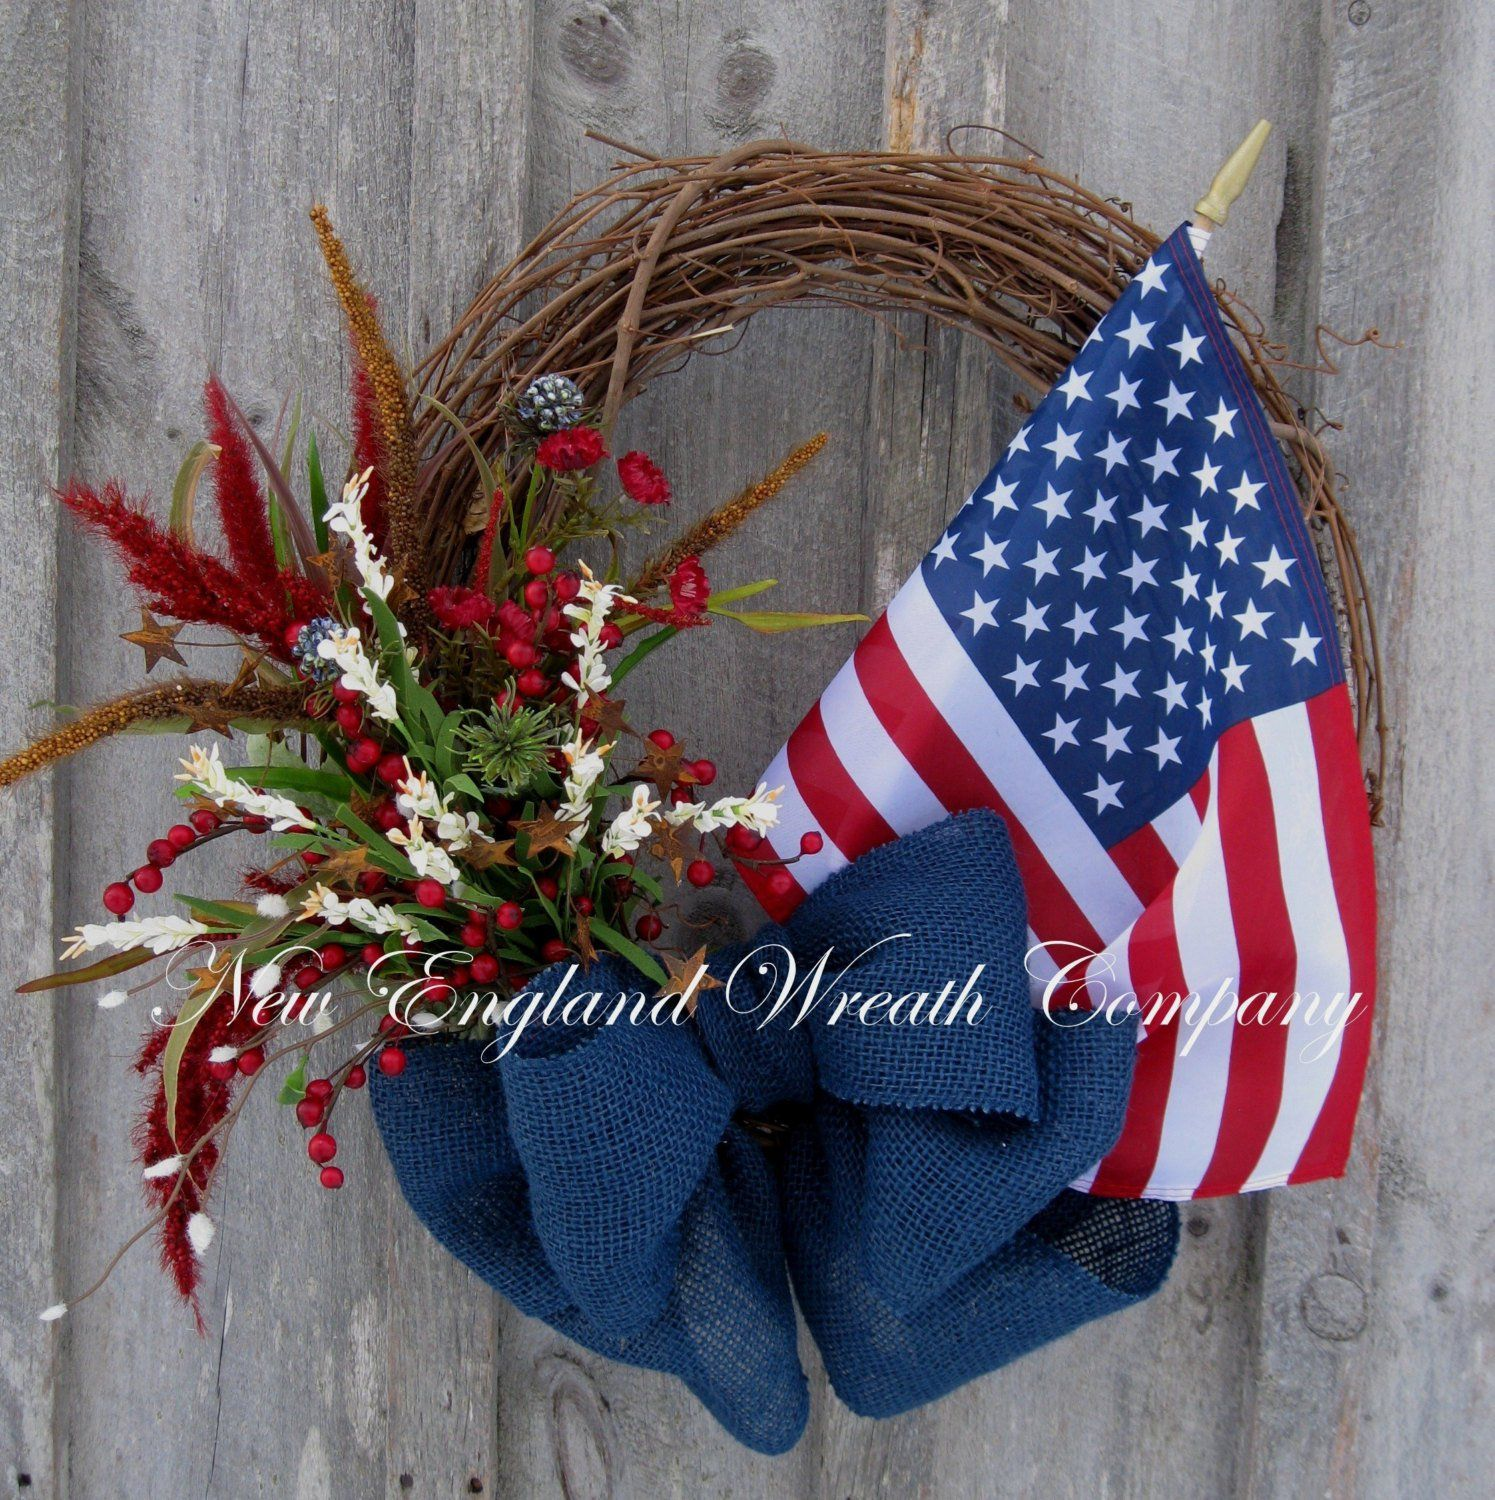 20 Awesome Handmade 4th Of July Wreath Ideas Wreaths Patriotic Wreath 4th Of July Wreath